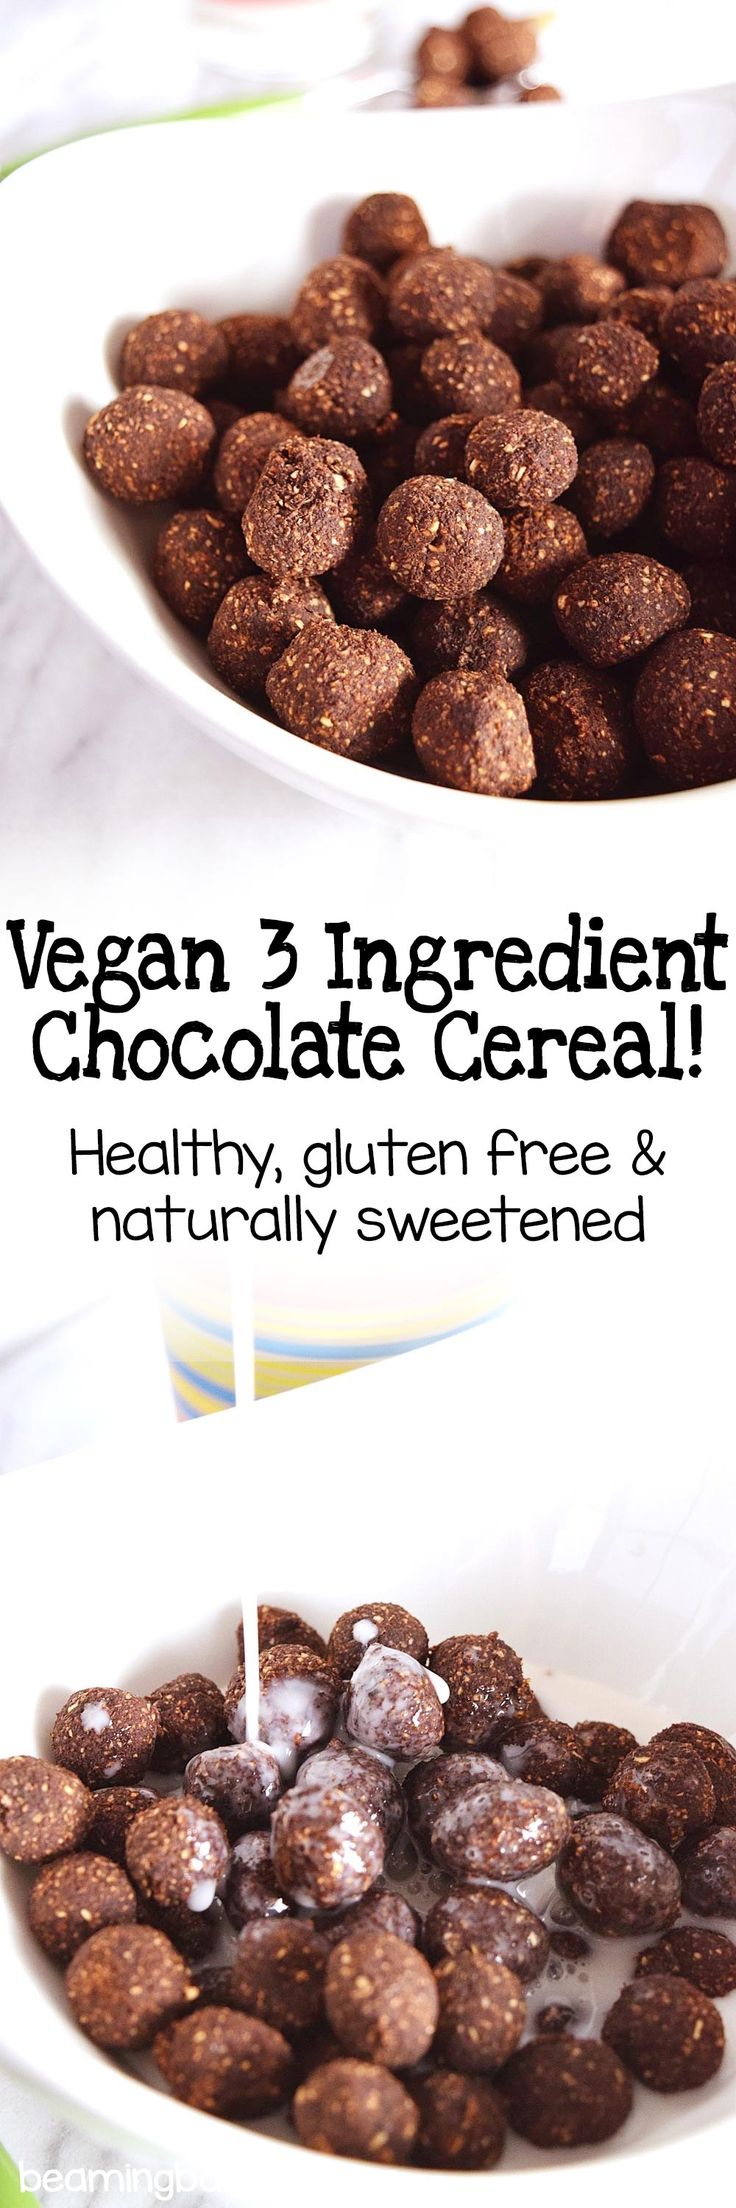 Vegan 3 ingredient chocolate cereal is crunchy, naturally sweet, and will totally take you back to childhood. The opposite of typical, sugary cereals, this is made with just 3 ingredients, and is completely gluten free, healthy and naturally sweetened!